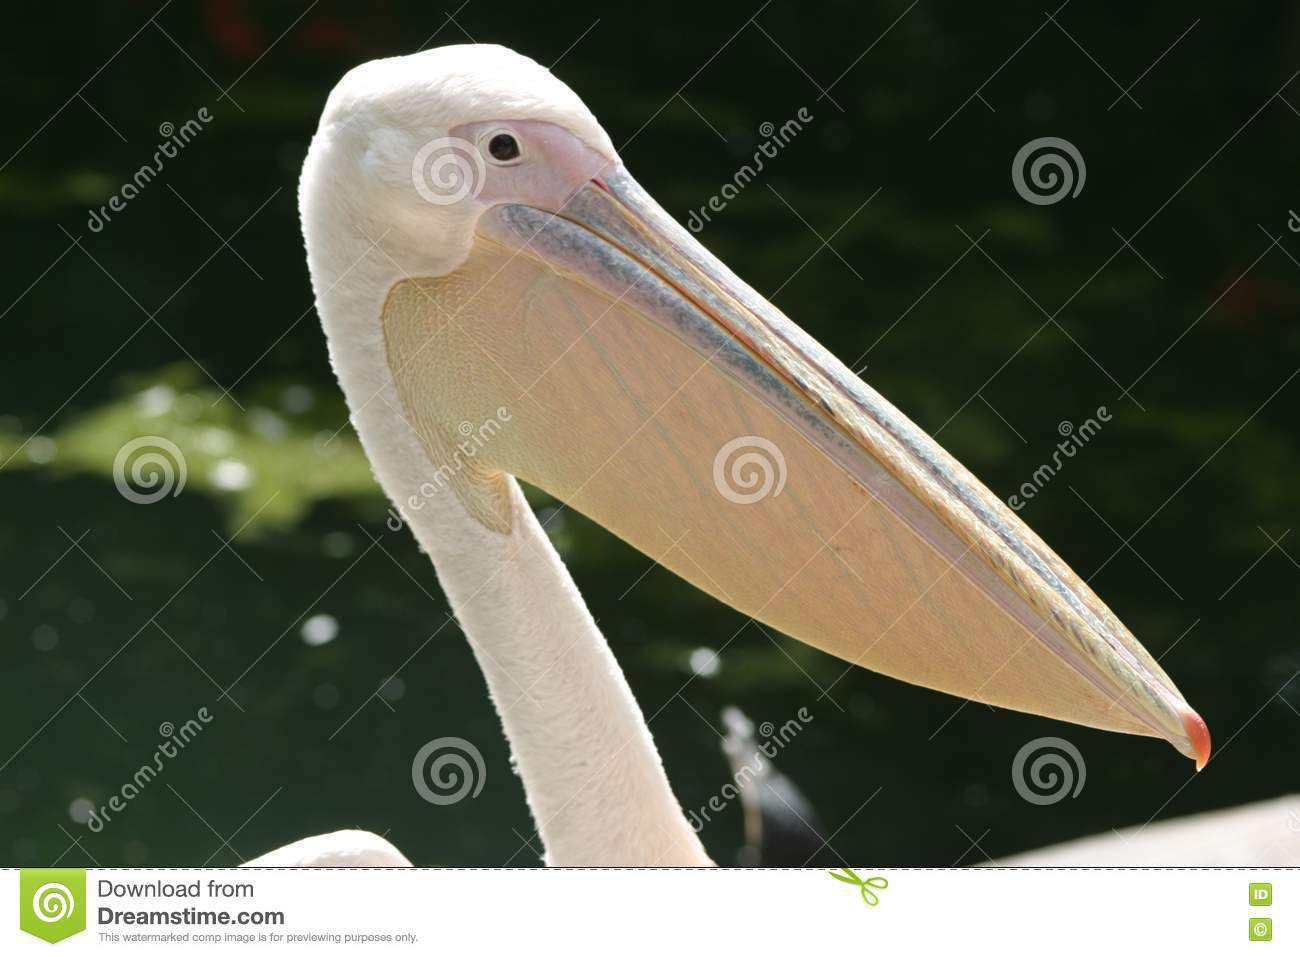 Big Mouth Bird Stock Photography Image 19382